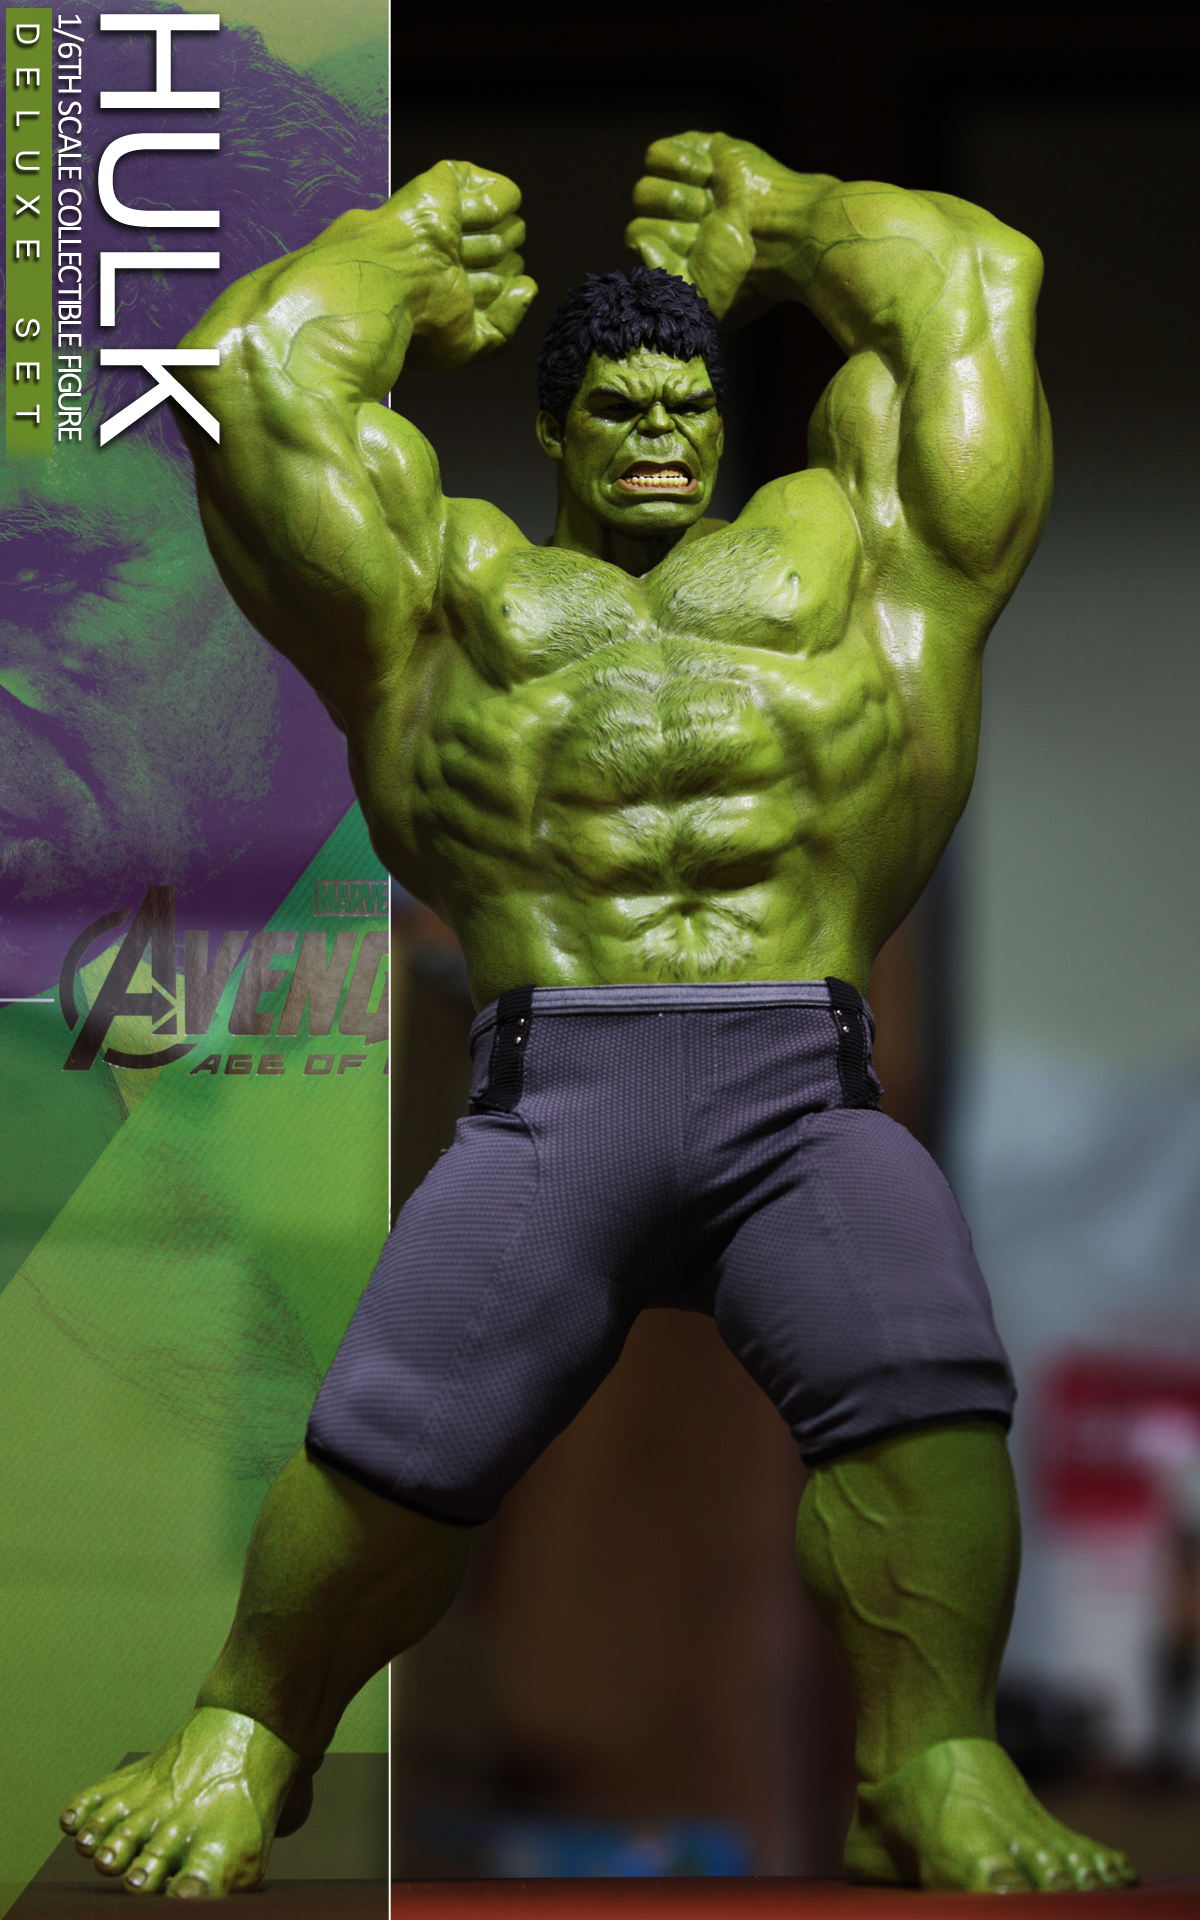 hottoys-avengers-age-of-ultron-hulk-picture03